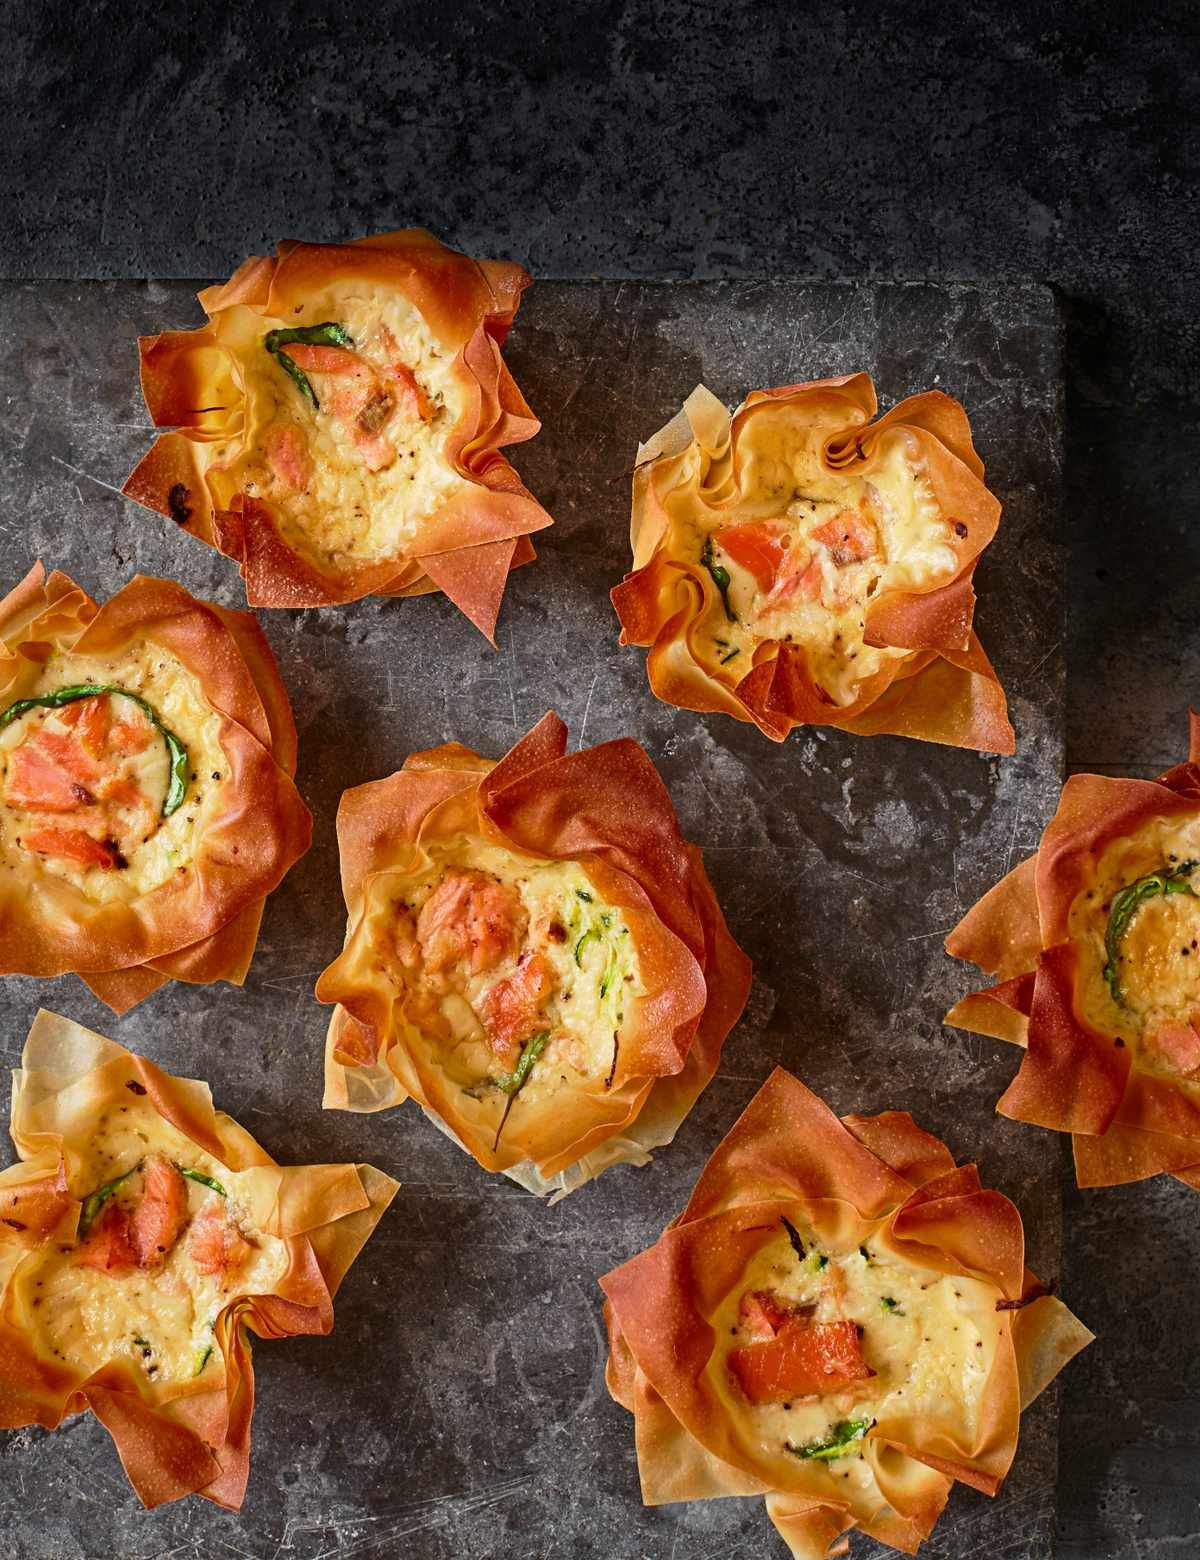 hot smoked salmon and courgette mini quiches recipe baking recipes in 2019 mini quiche recipes smoked salmon recipes picnic foods pinterest